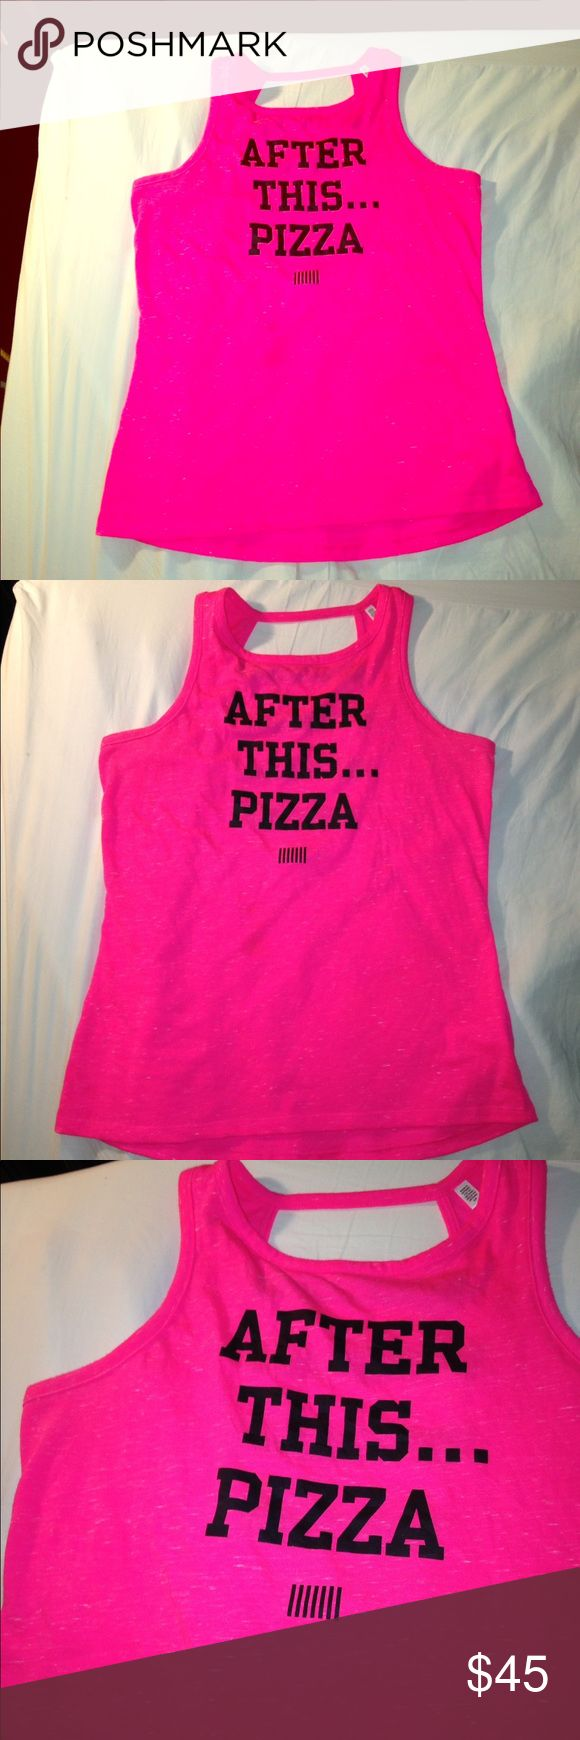 "🍕VS Sport! ""After This... Pizza"" S 🍕#pizza 💞 Marked Hot pink Victoria's Secret Sport Tank size Small. 95% polyester 5% Cotton  In great Preowned condition, no flaws or discolorations. Smoke free home. HTF PINK Victoria's Secret Tops Tank Tops"